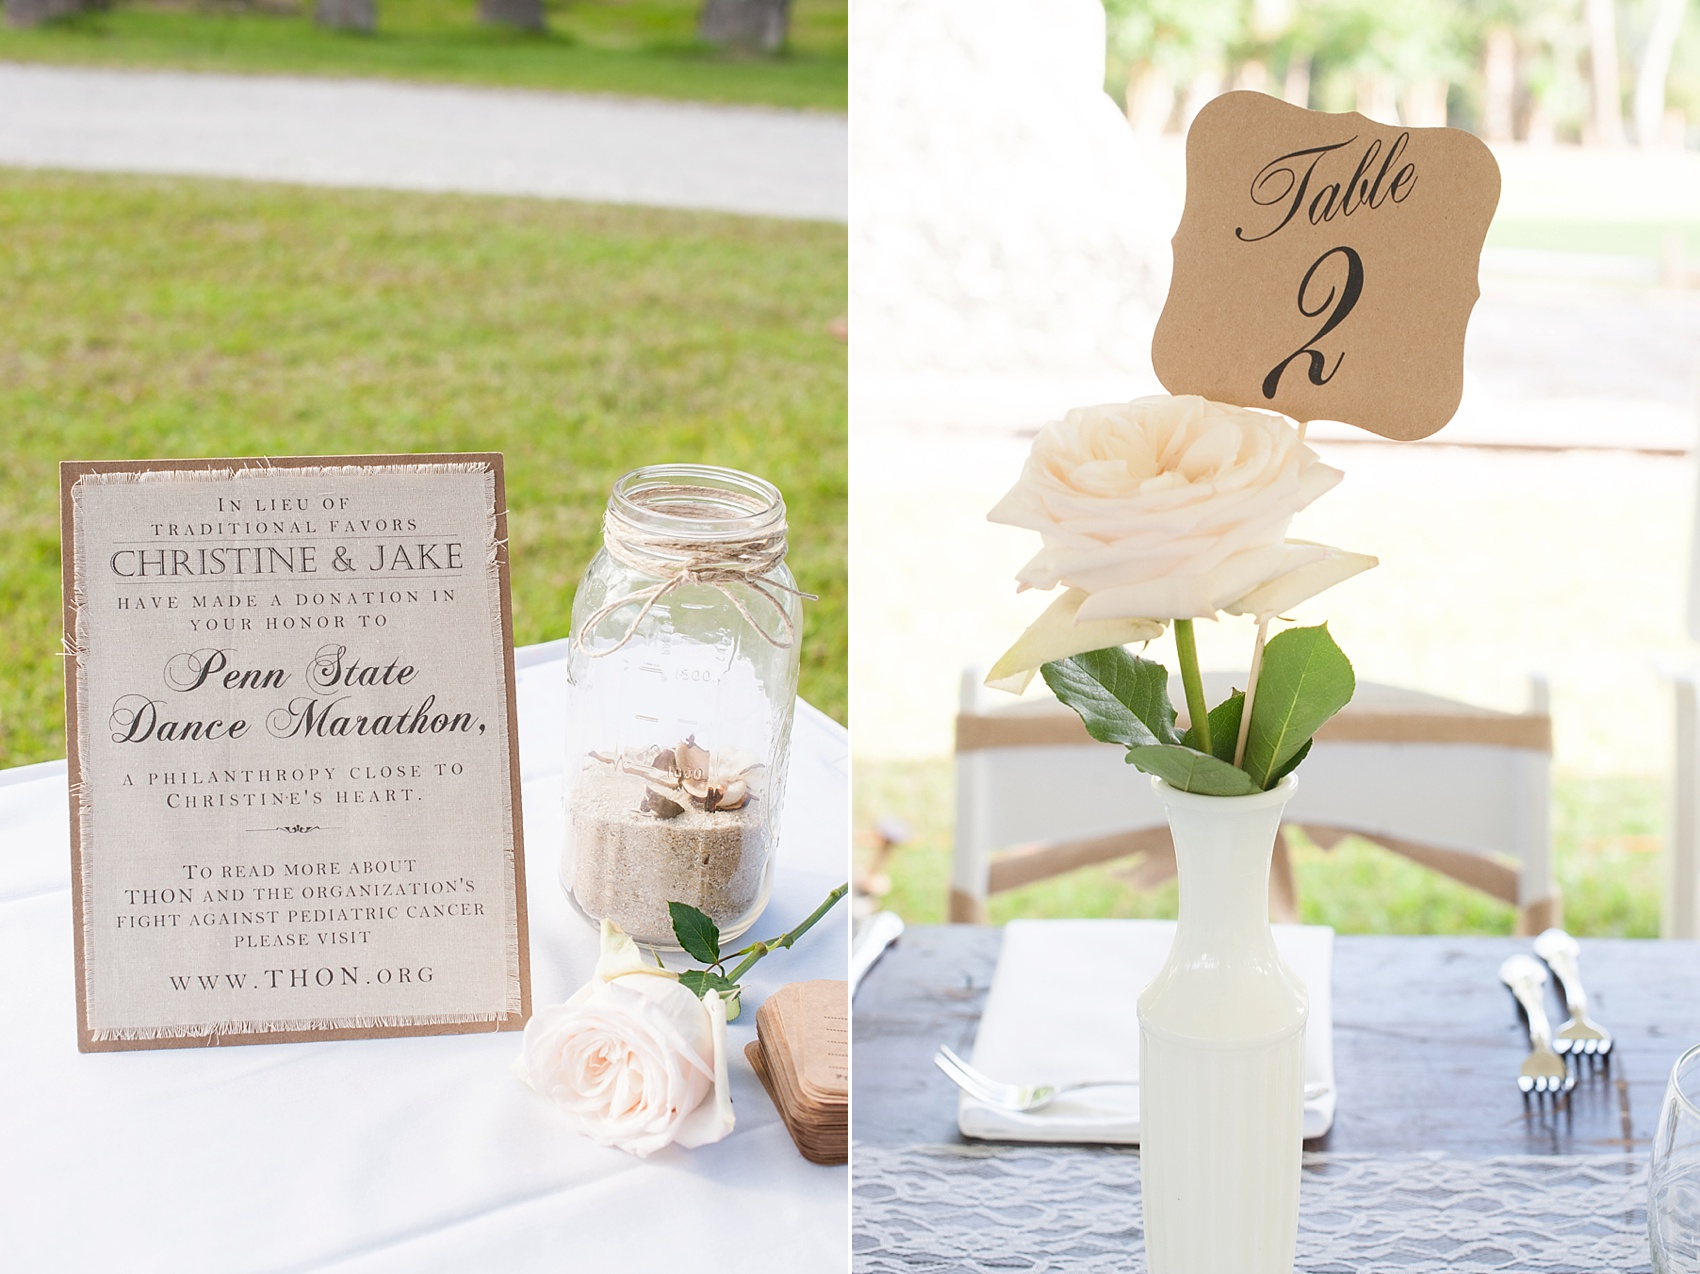 Tented wedding reception for a Haig Point wedding in South Carolina, off the coast of Hilton Head. Farm tables and white roses and vases complete the look. Photos by Mikkel Paige Photography. A donation was made to Thon for Penn State in lieu of physical favors.